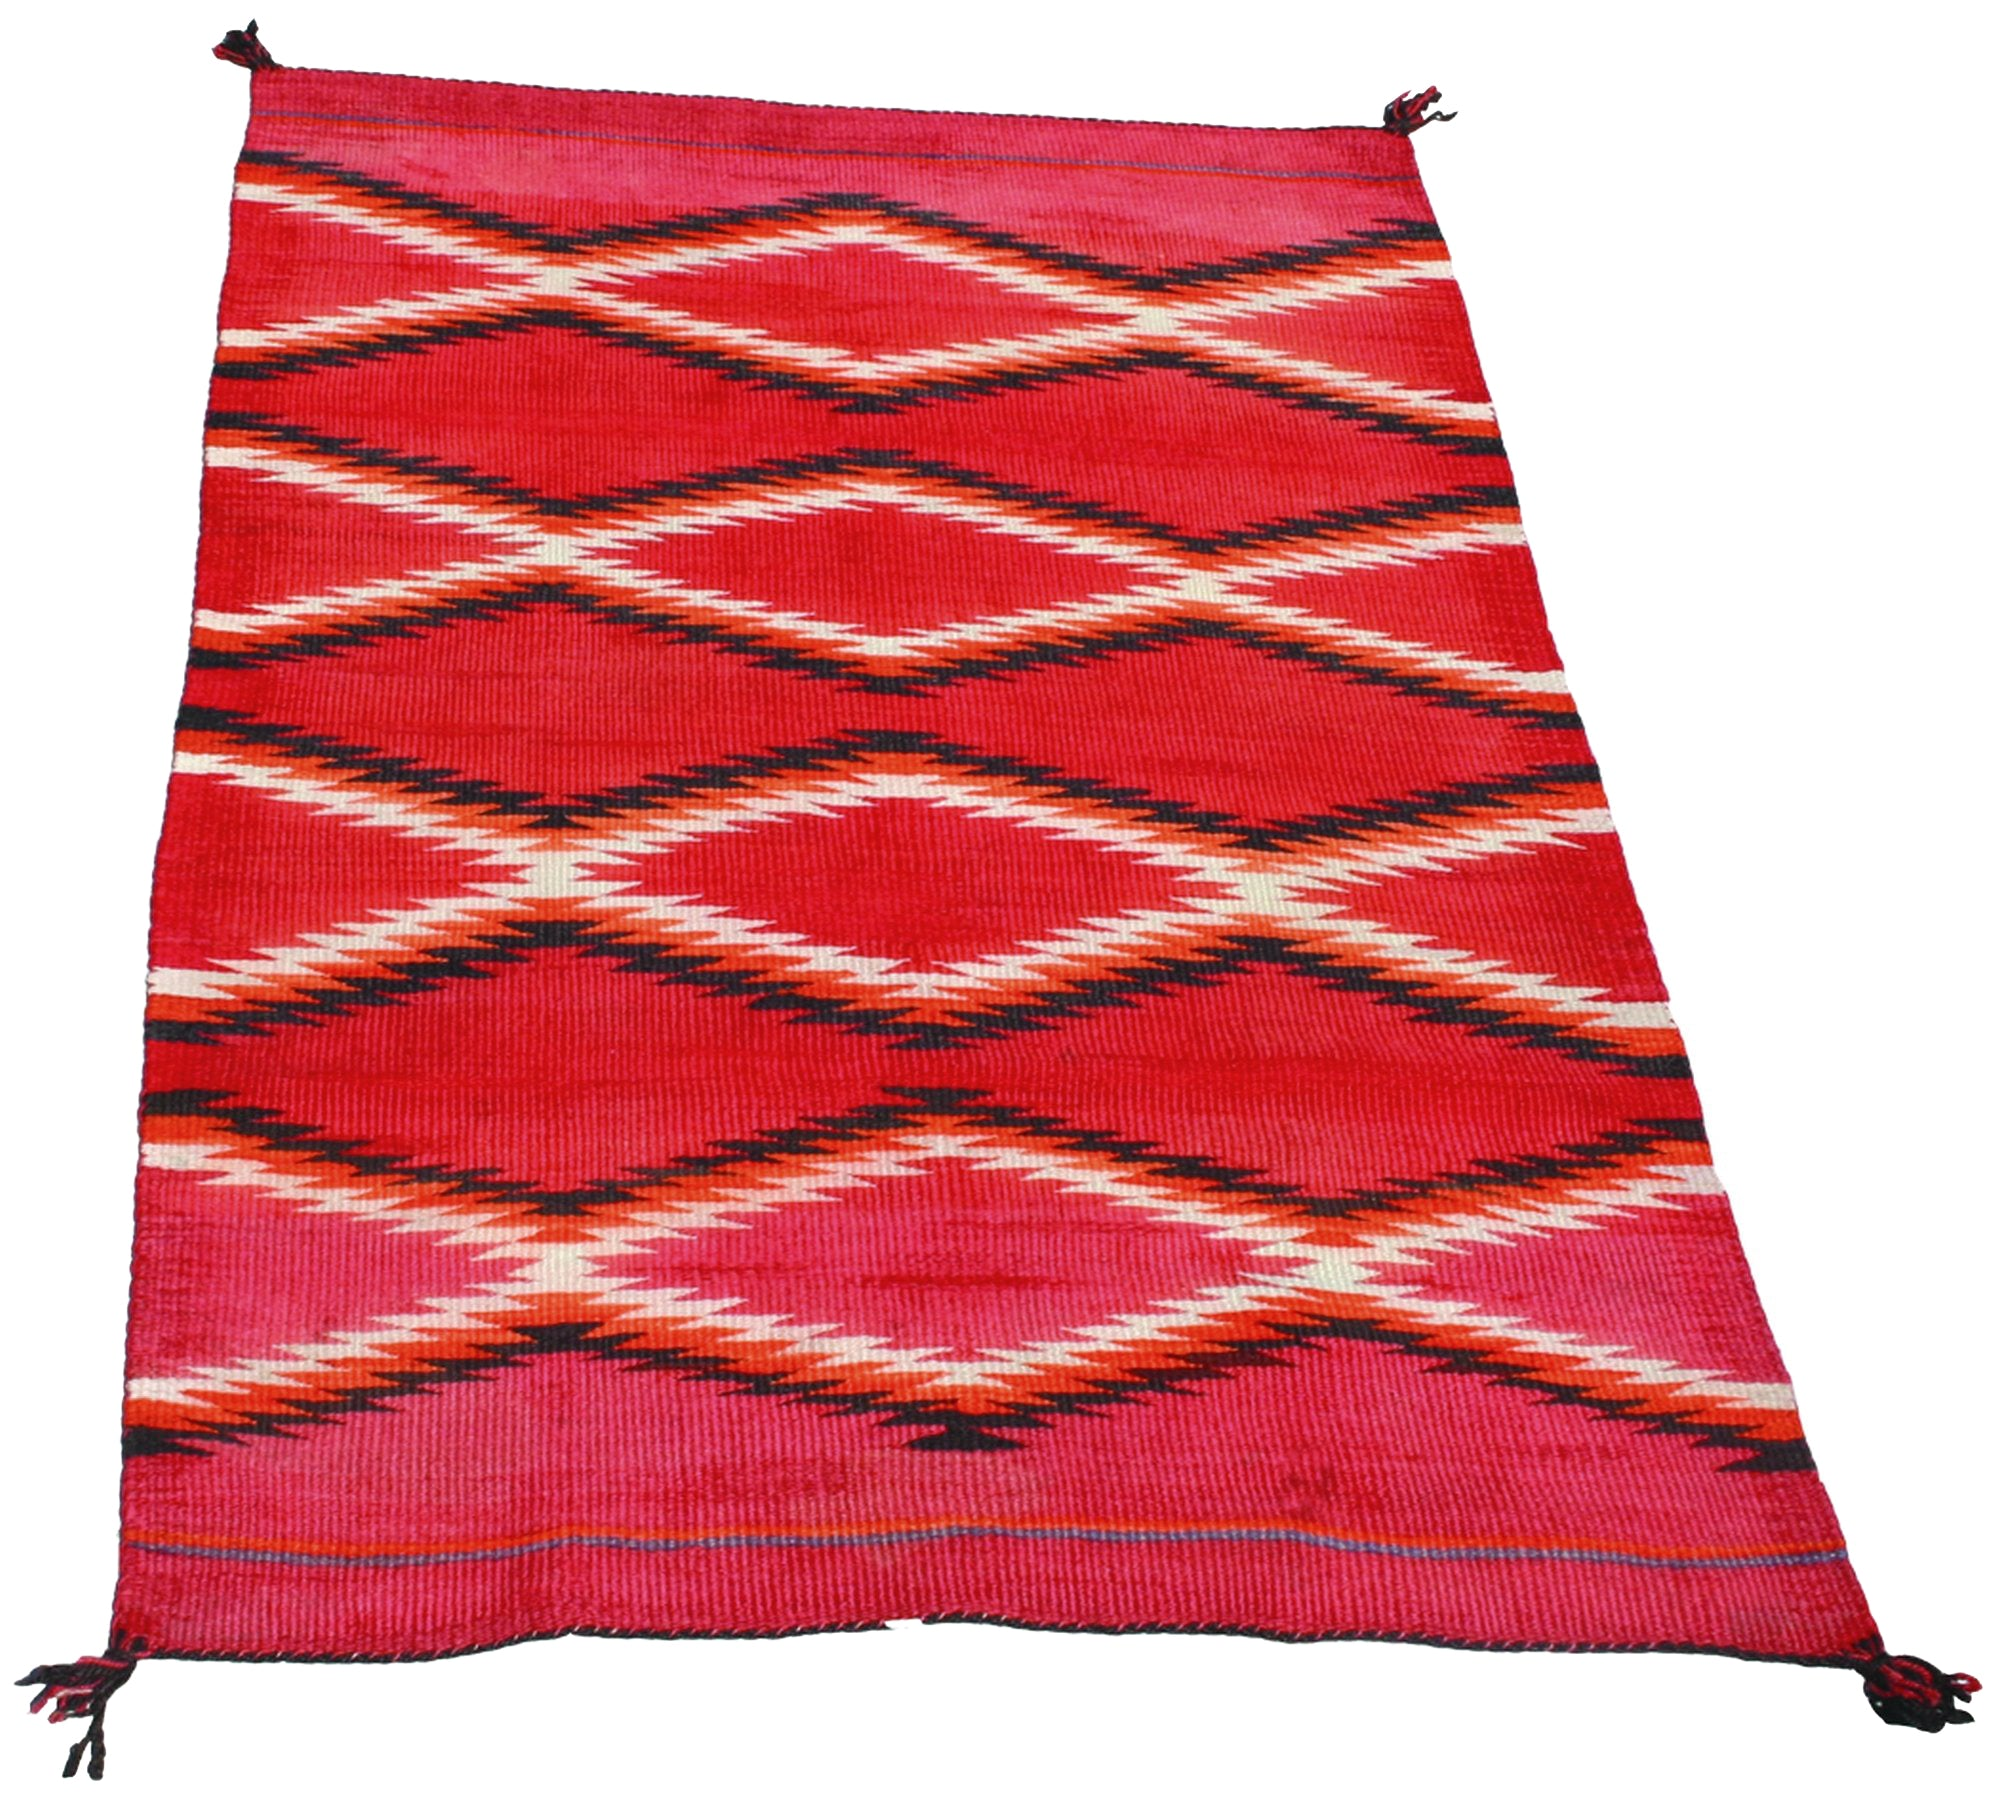 Transitional Child's Blanket 4' to 6', blankets, boy scouts, child's blankets, navajo, transitionals, weavings